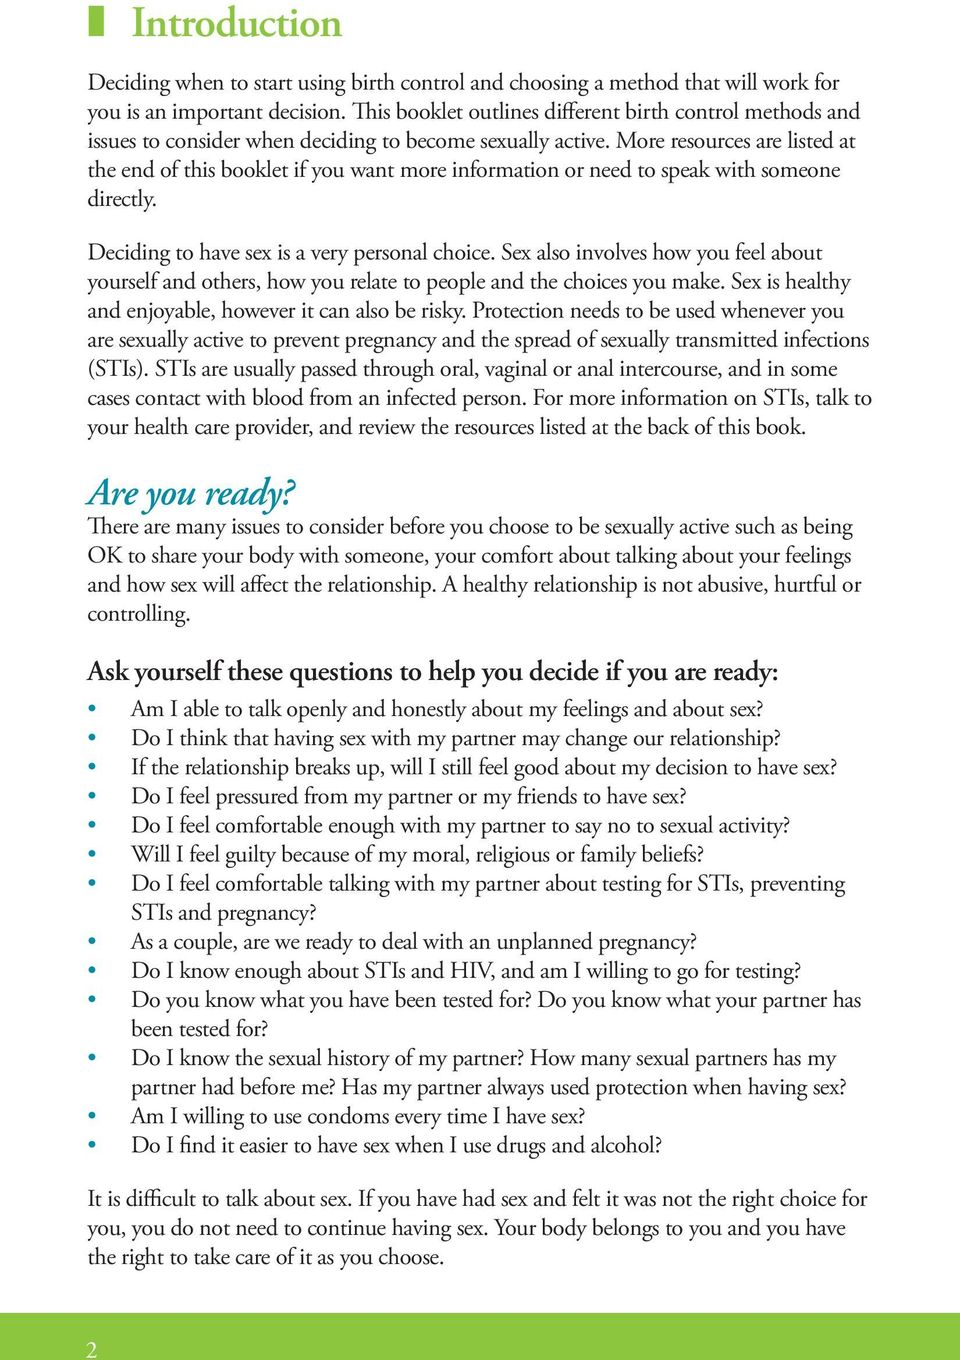 More resources are listed at the end of this booklet if you want more information or need to speak with someone directly. Deciding to have sex is a very personal choice.